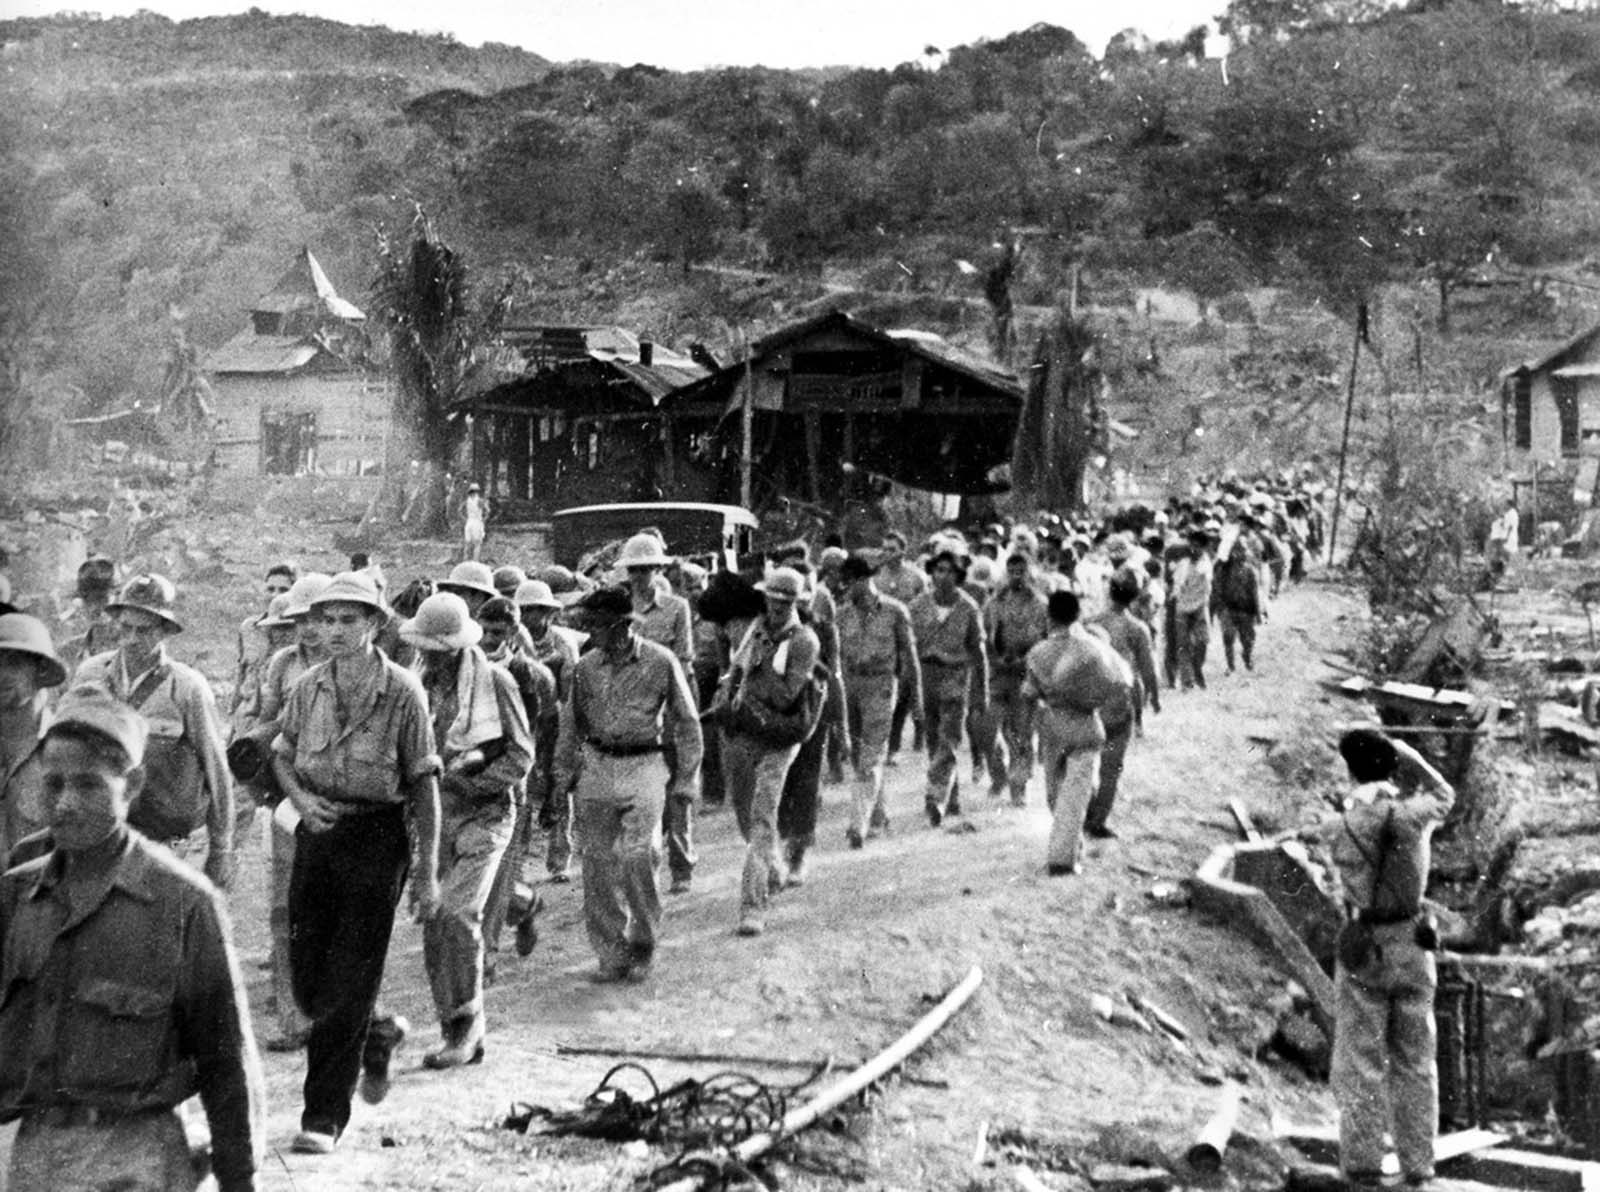 American and Filipino prisoners of war captured by the Japanese are shown at the start of the Death March after the surrender of Bataan on April 9, 1942, near Mariveles in the Philippines. Starting from Mariveles on April 10, some 75,000 American and Filipino prisoners of war were force-marched to Camp O'Donnell, a new prison camp 65 miles away. The prisoners, weakened after a three-month siege, were harassed by Japanese troops for days as they marched, the slow or sick killed with bayonets or swords.